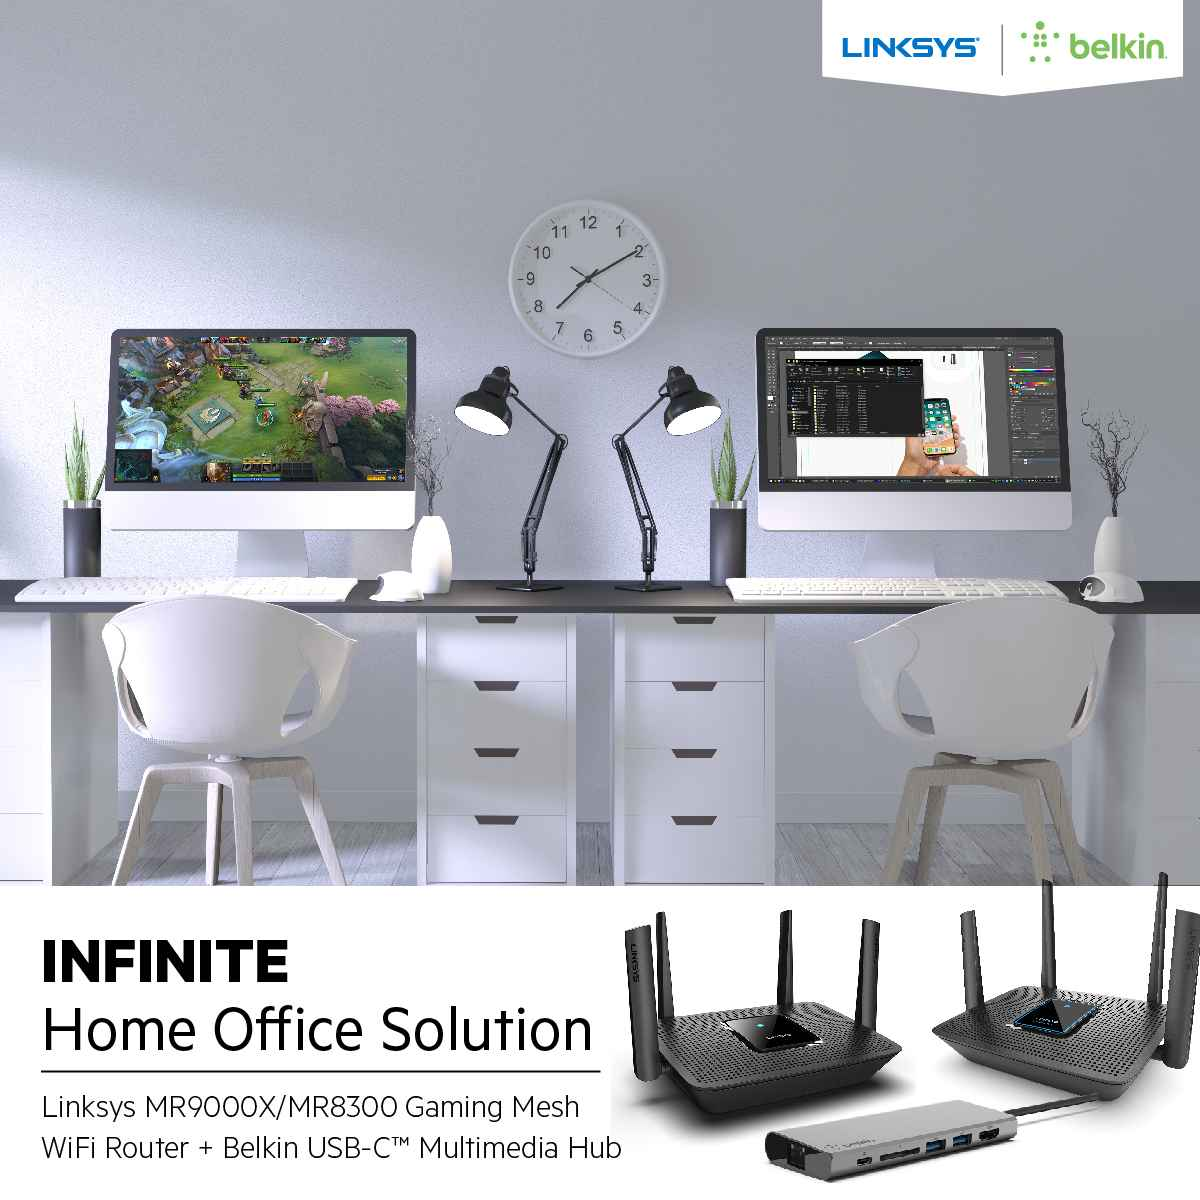 Infinite Home Office Solution